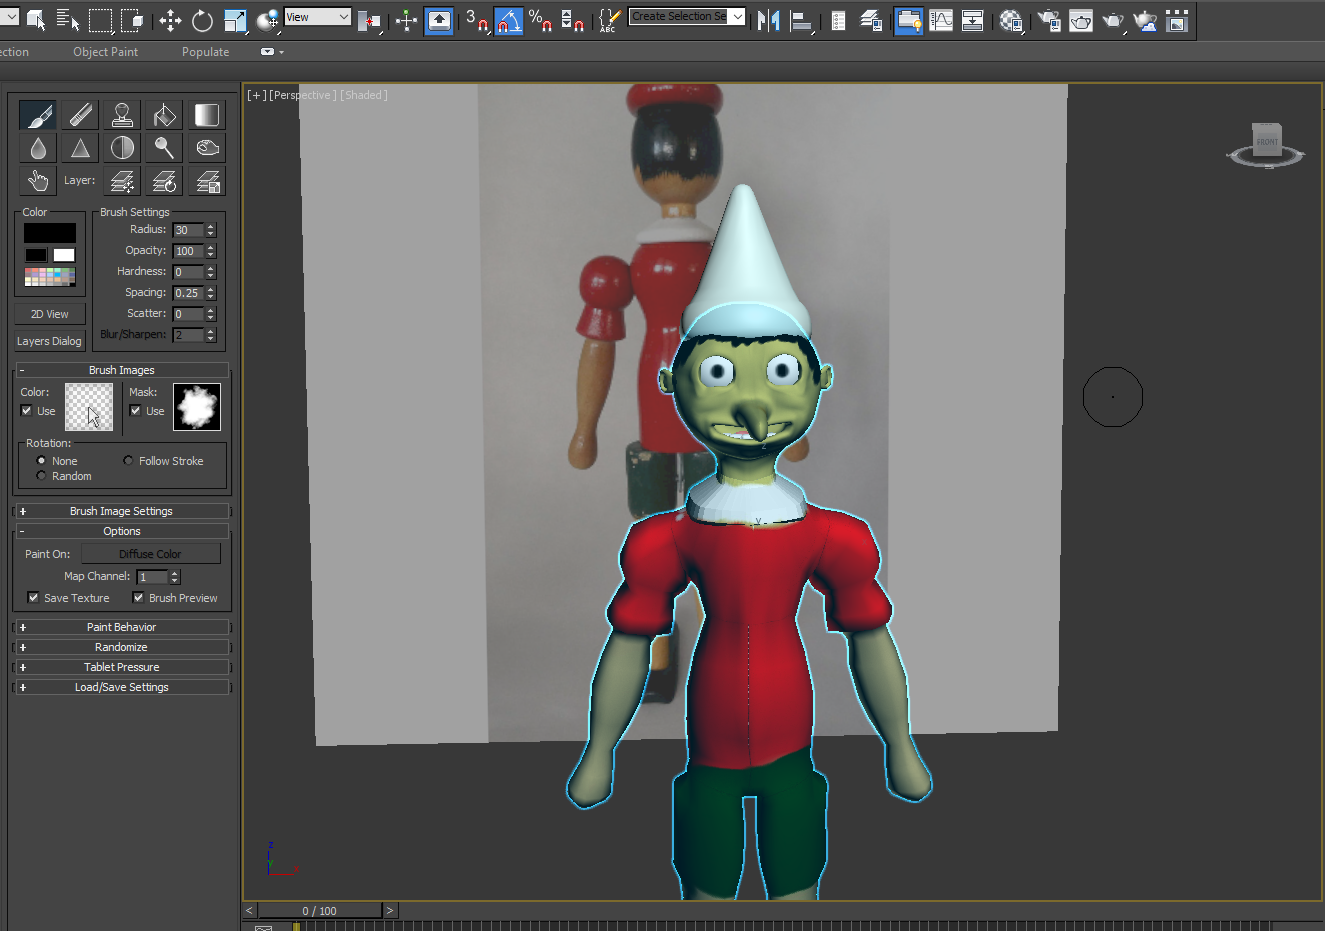 Pinnochio – 3D model from scratch to animated character in Unity 3D